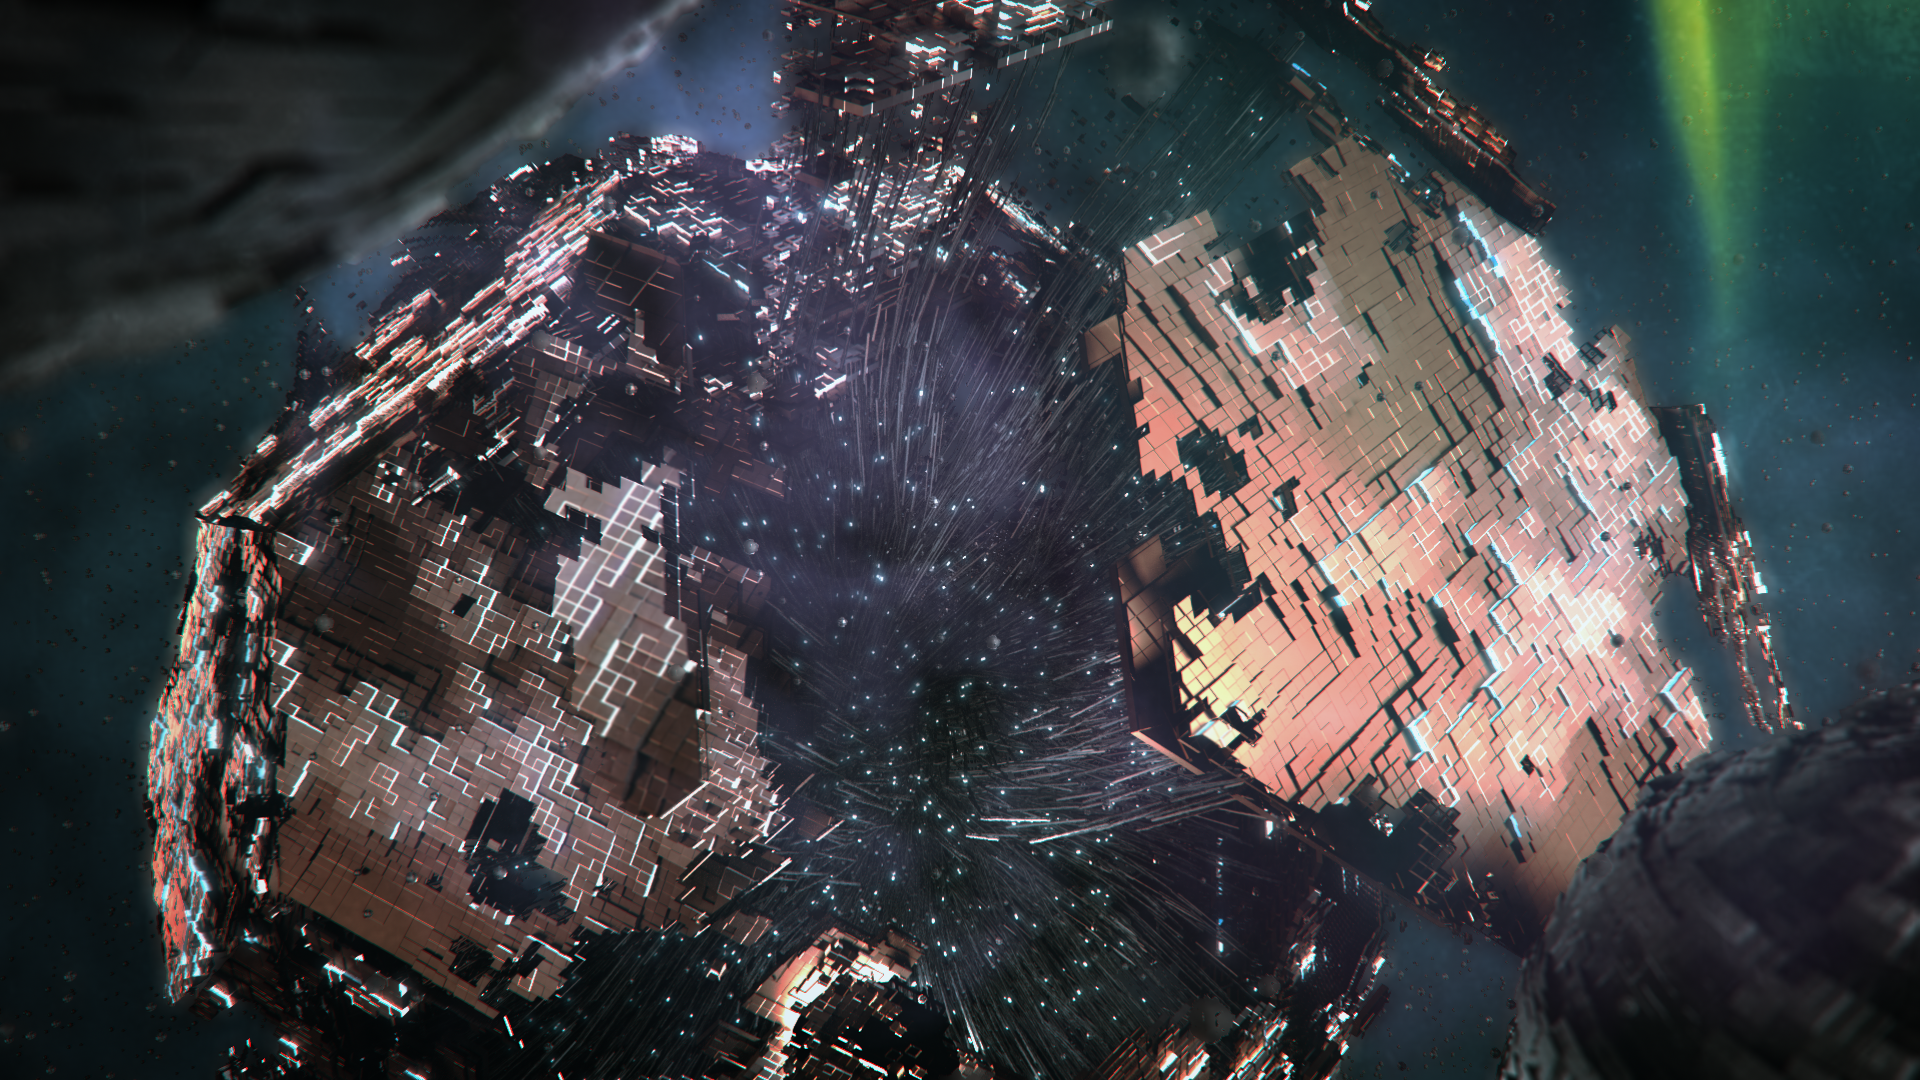 3D render I worked on in Downtime. Playing around with procedural workflow in Cinema 4D, X-Particles and Octane Renderer